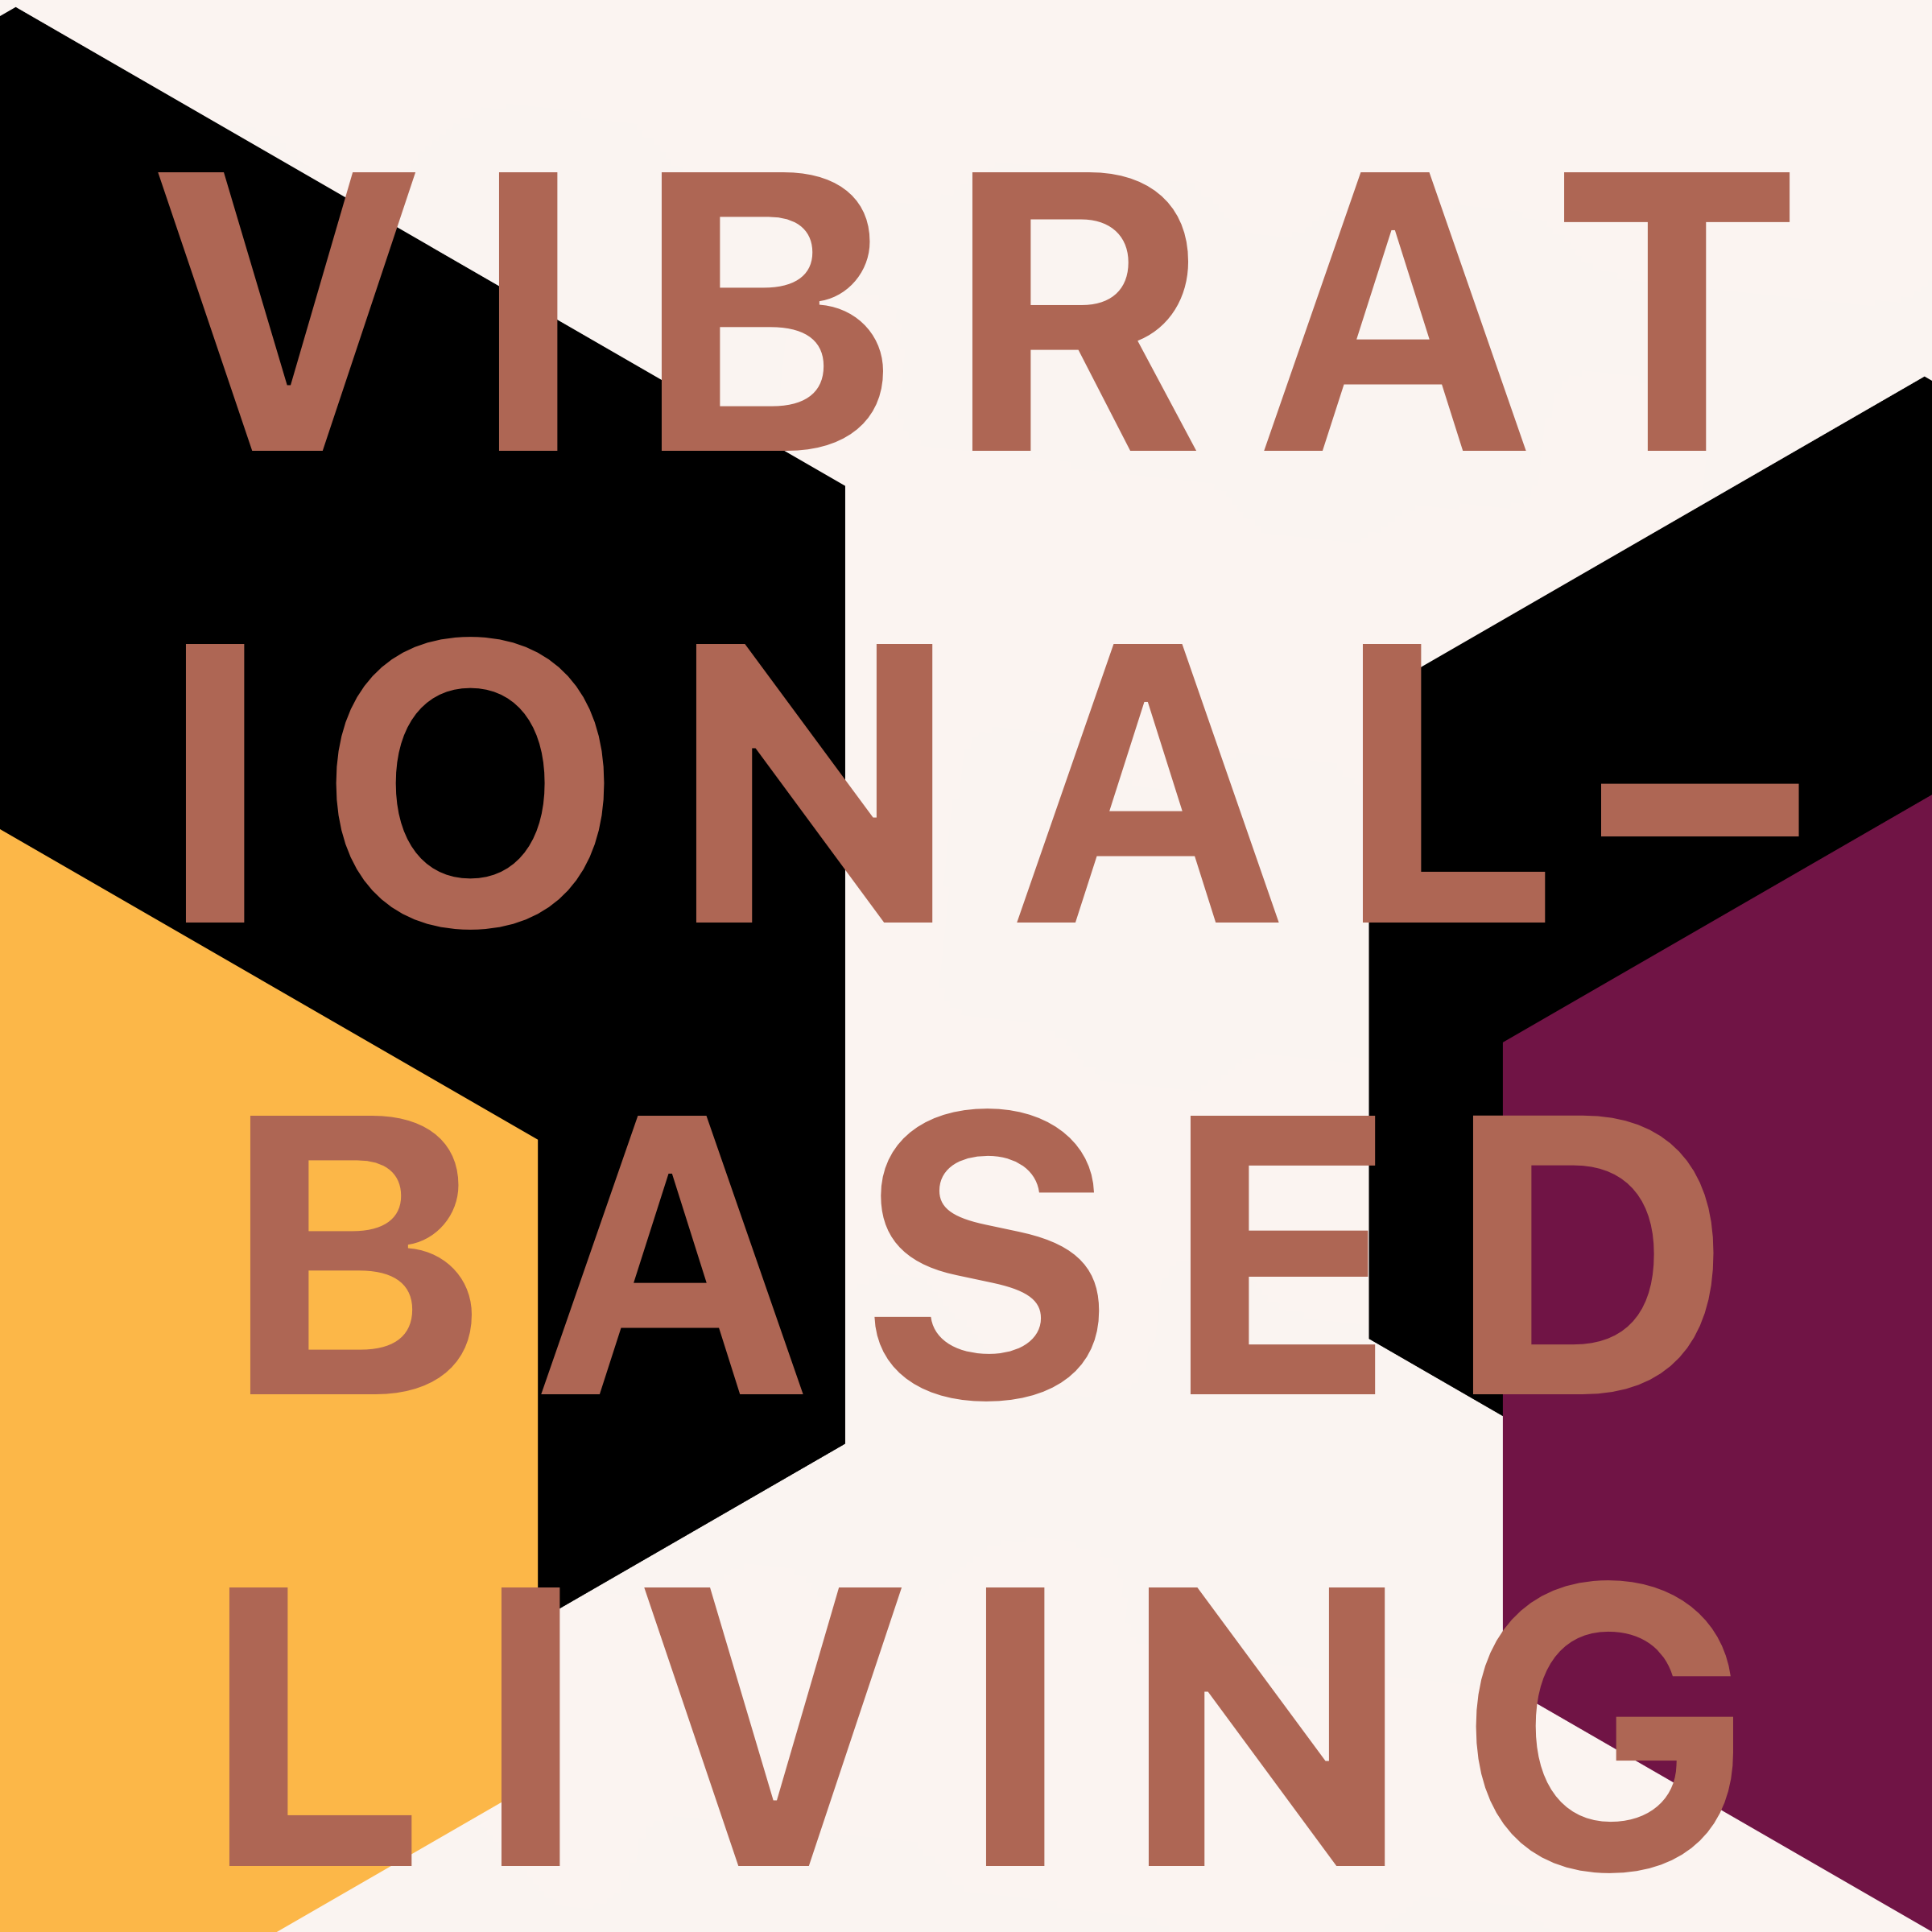 Learn the essentials of Vibrational-Based Living. - An Online Class W/Lalah DeliaLearn the knowledge, tools, and skills of Vibrational-Based Living in order to vibrate higher daily. There's higher path for you, and you can access it. Are you ready to access, explore, expand, and elevate?Of course you are! Vibrating higher changes the game. See you in class!